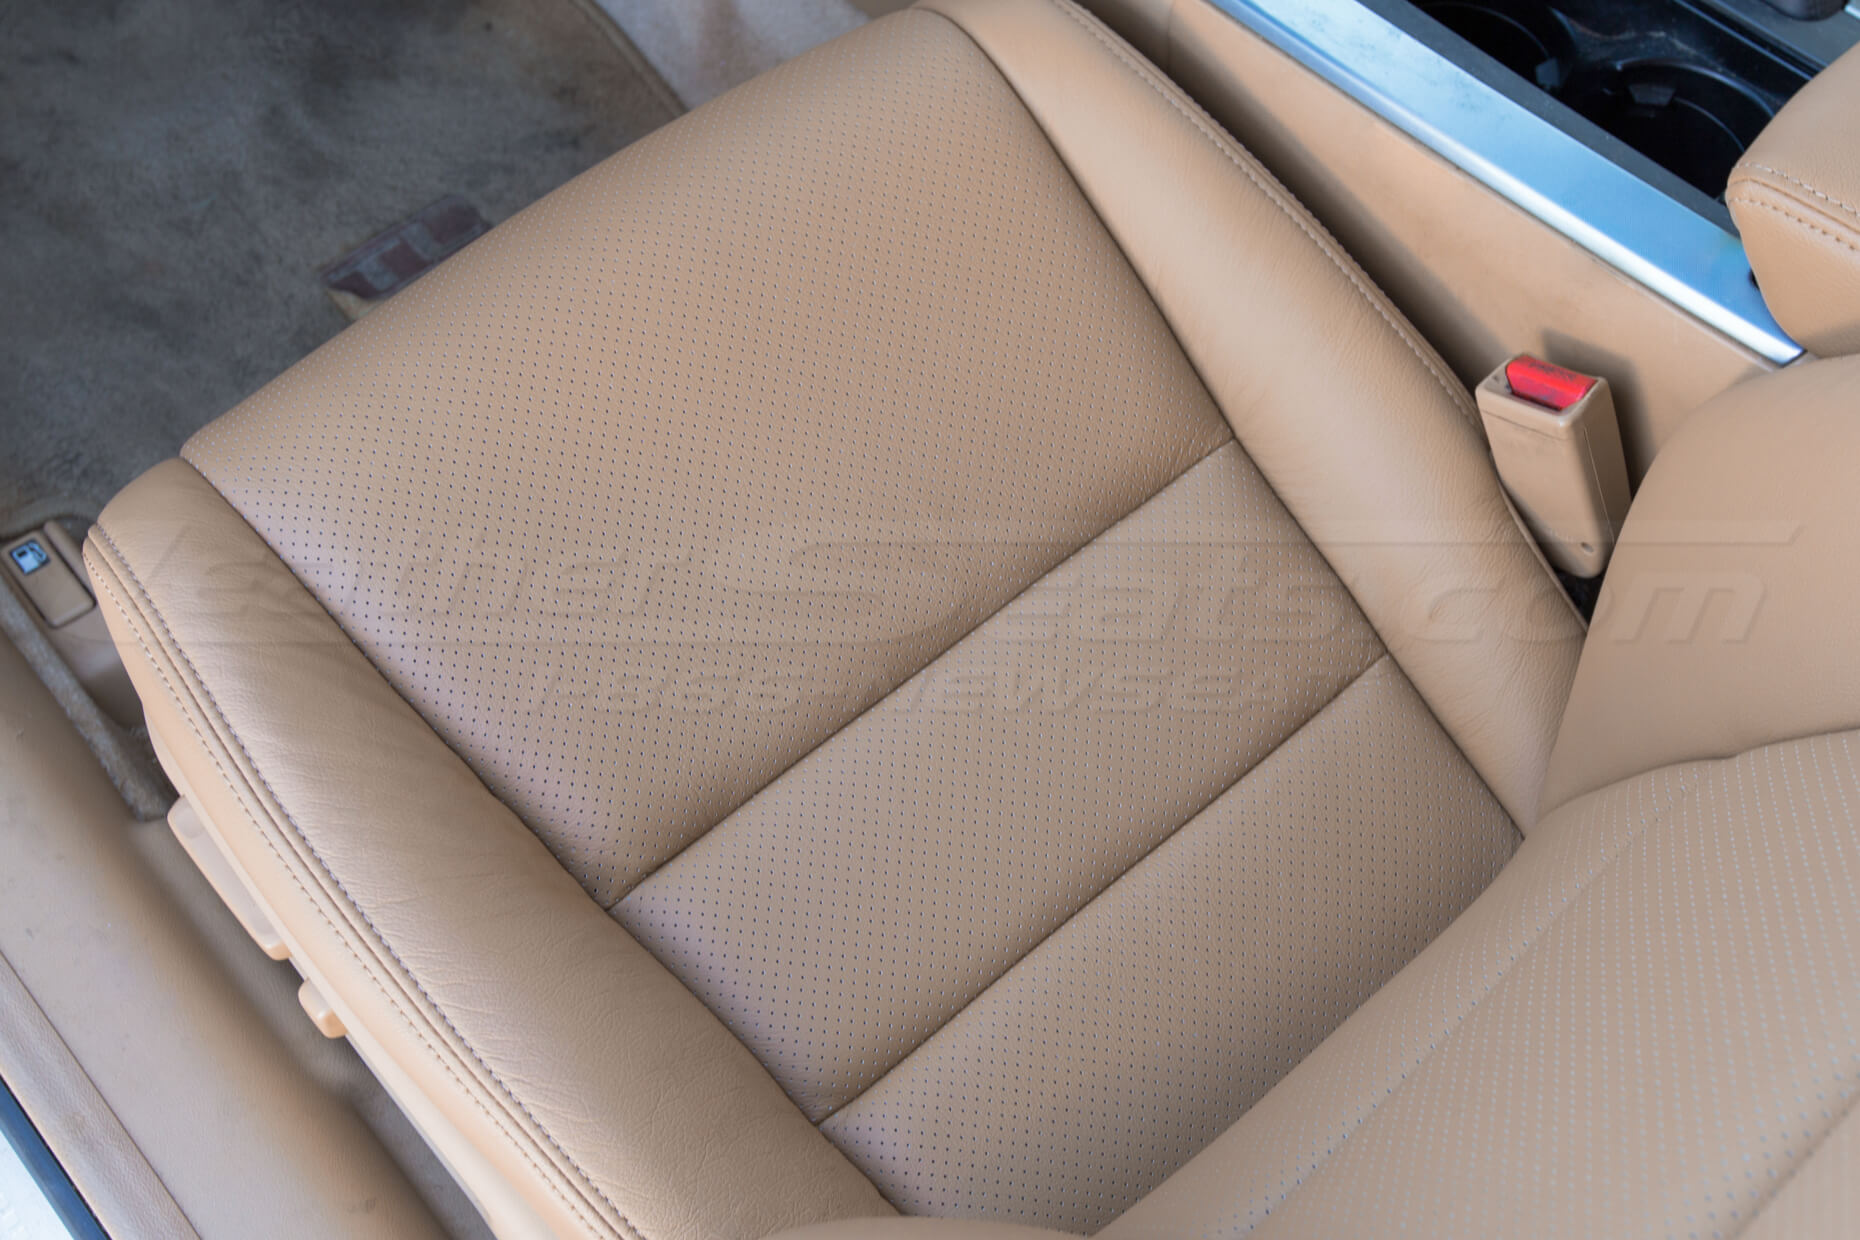 Repaired leather seat cushion